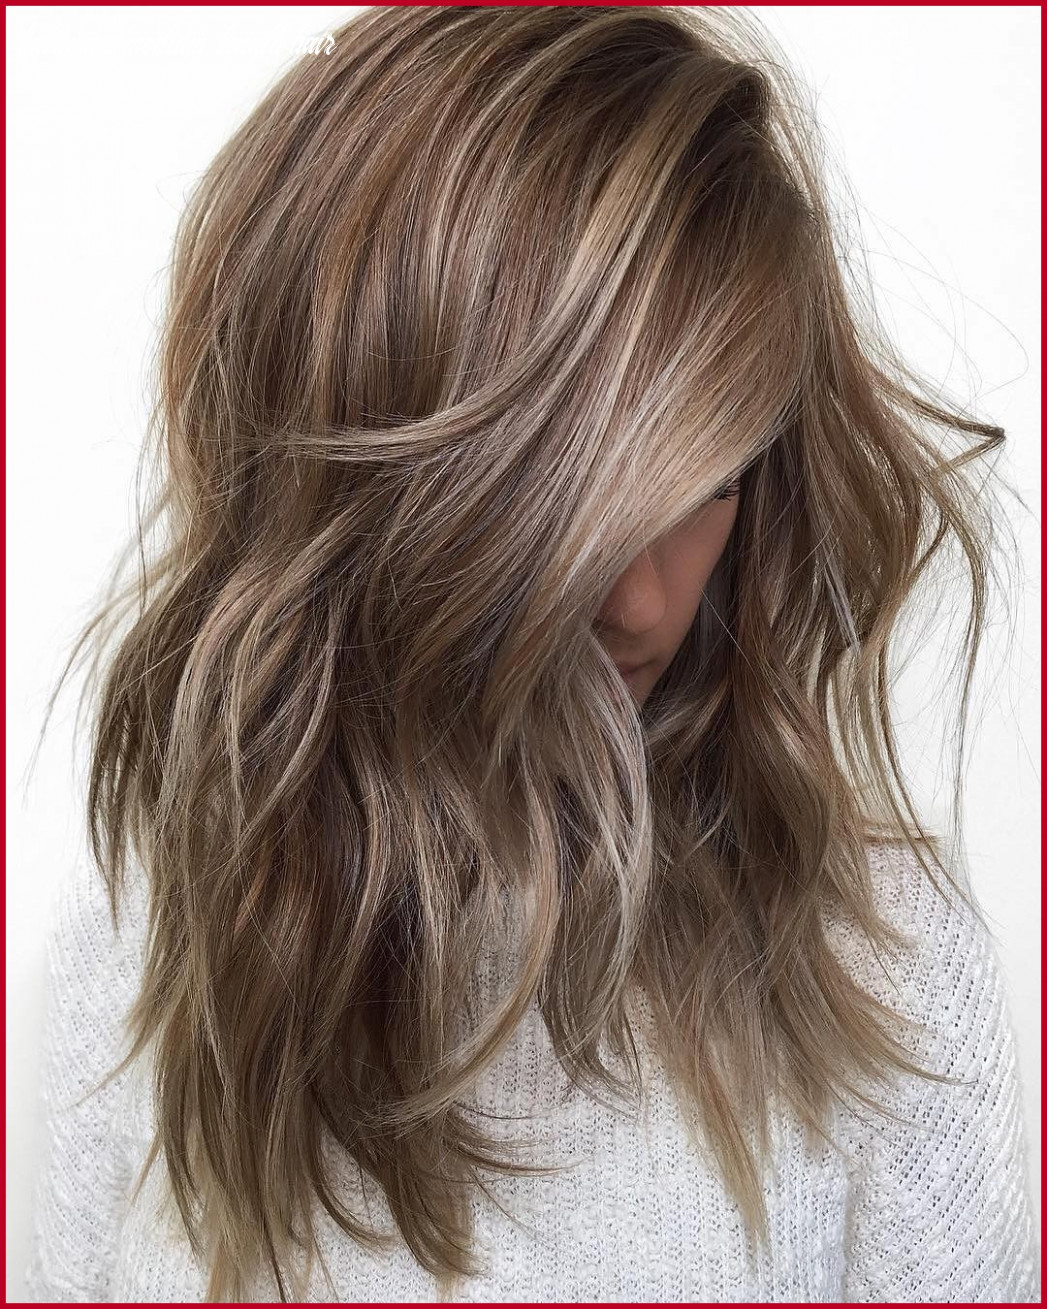 Ombre Hairstyles for Medium Length Hair 9 9 Balayage Ombre ...